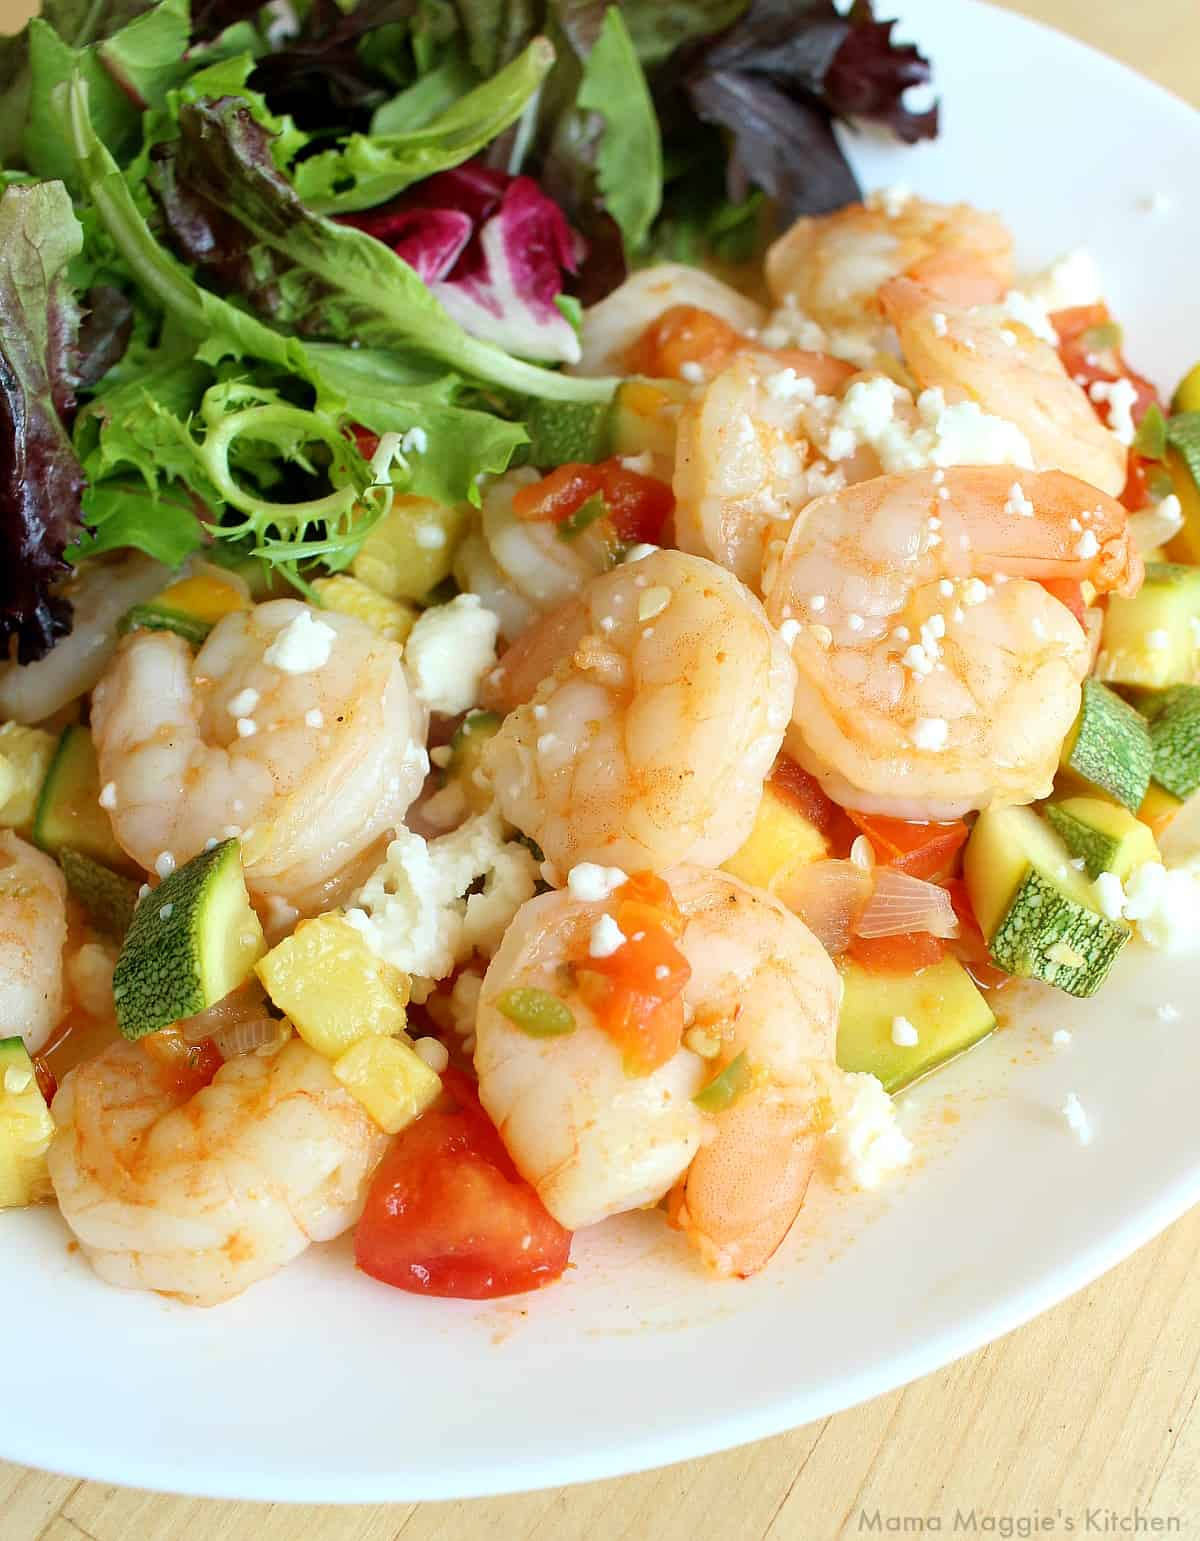 Shrimp with calabacitas served on a white plate and next to a salad.